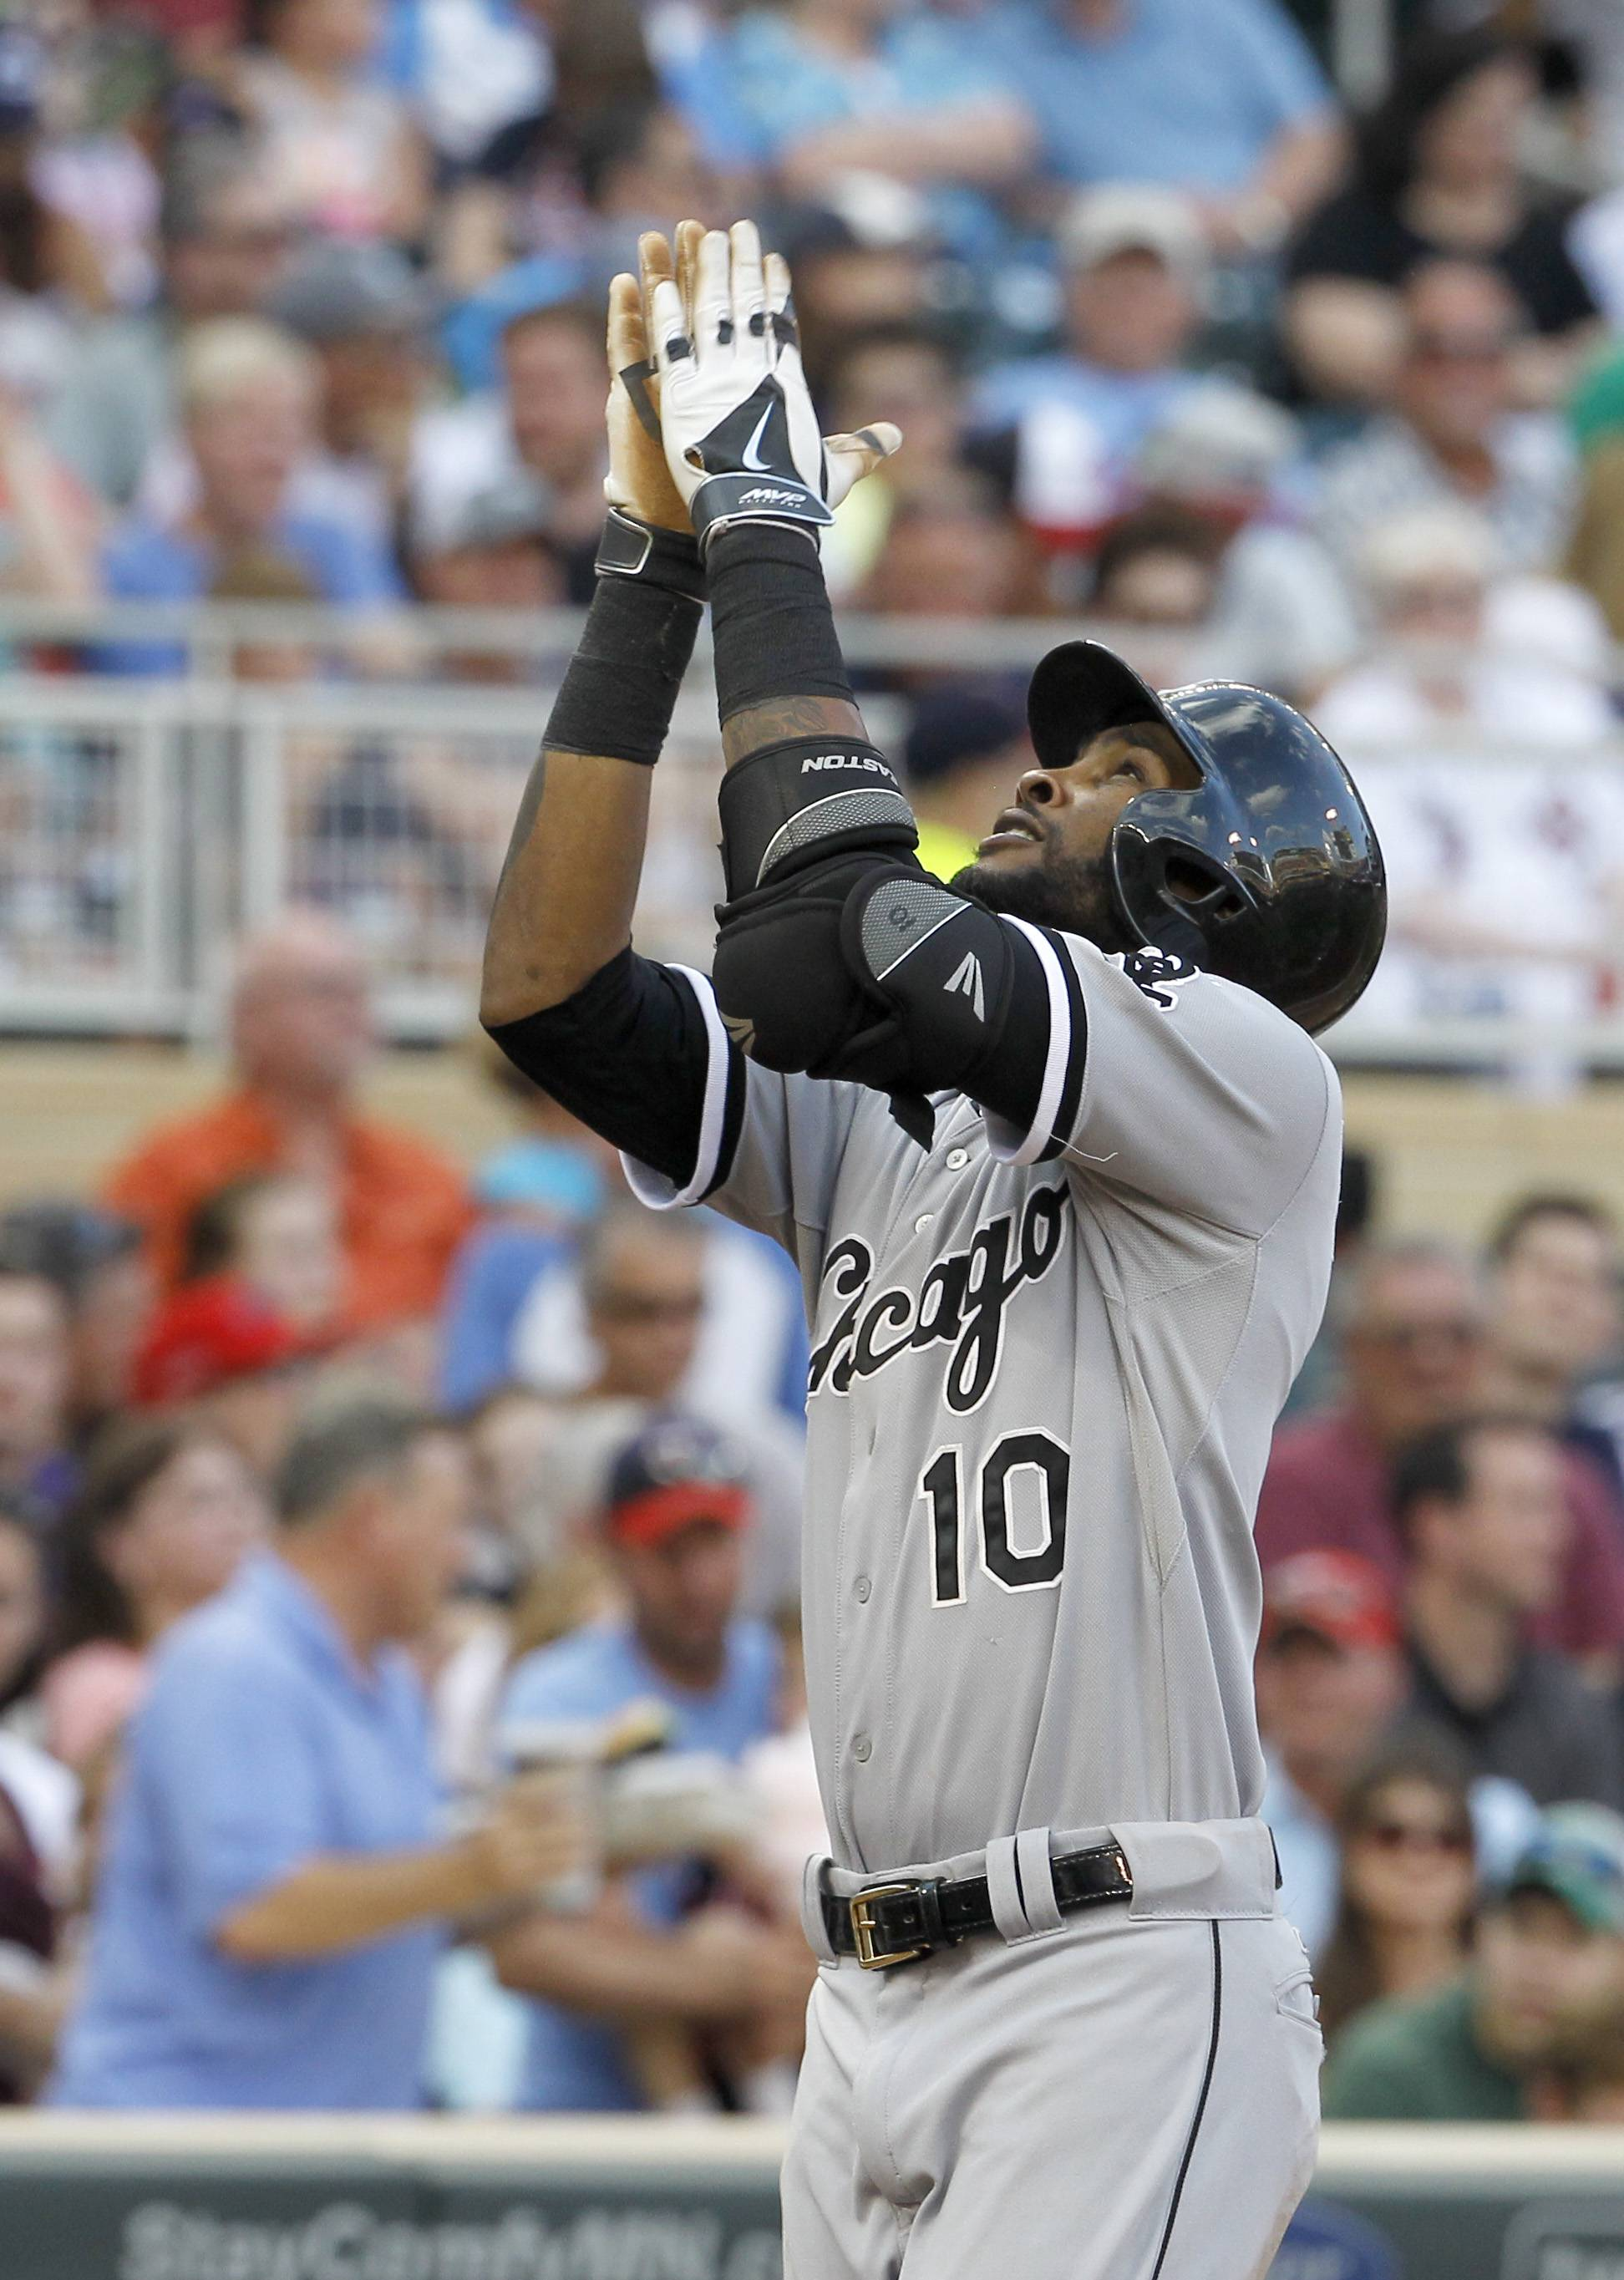 The White Sox's Alexei Ramirez hit his 10th home run during Saturday's game against the Twins in Minneapolis.